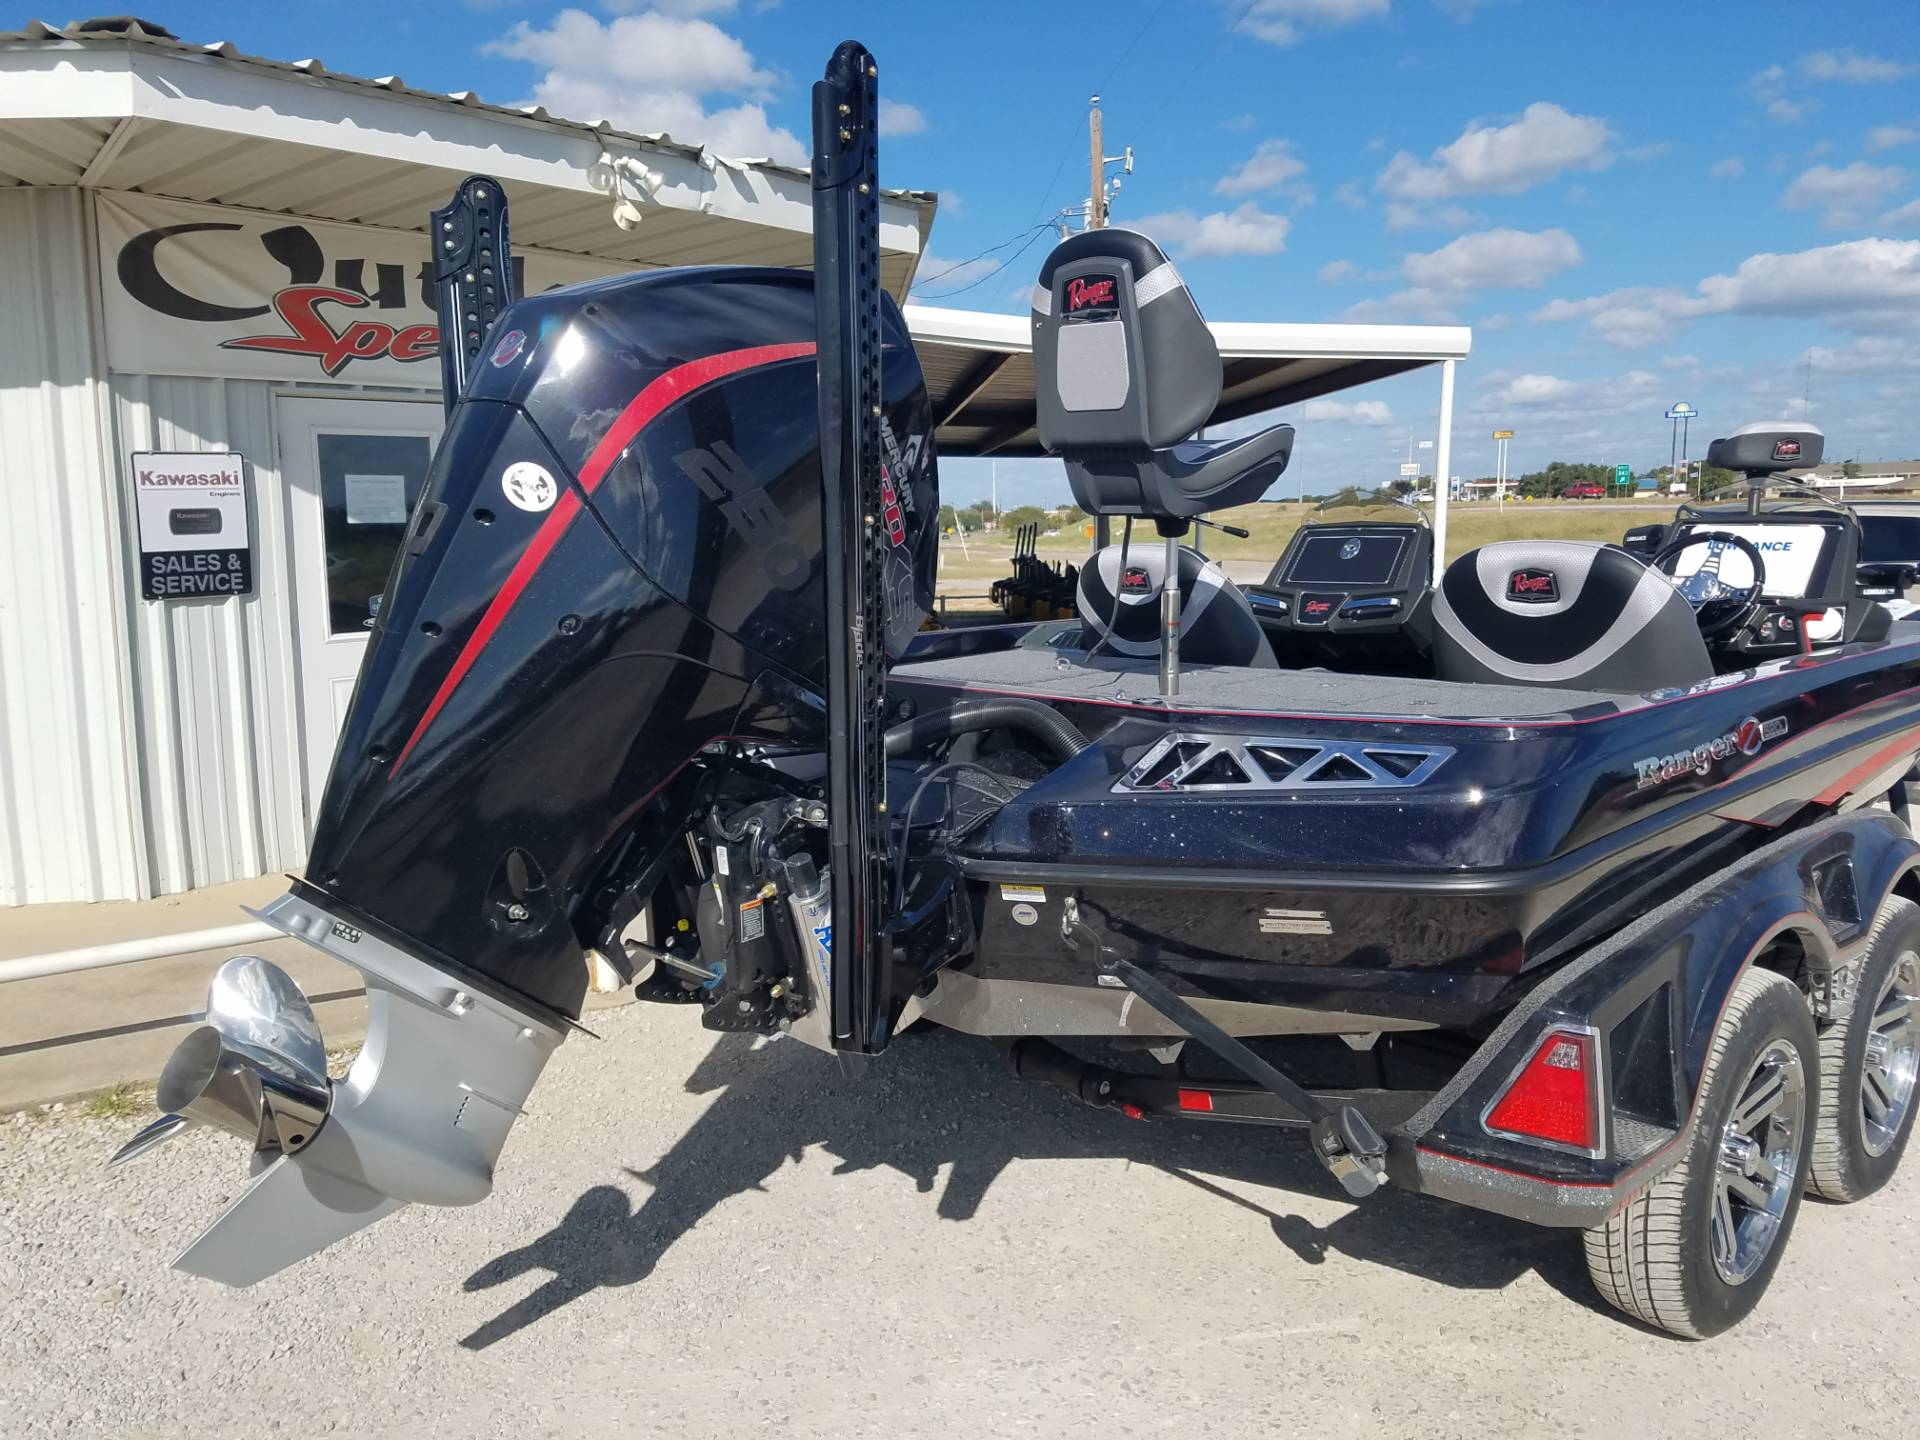 2021 Ranger Z520L Touring Package w/ Dual Pro Charger in Eastland, Texas - Photo 2